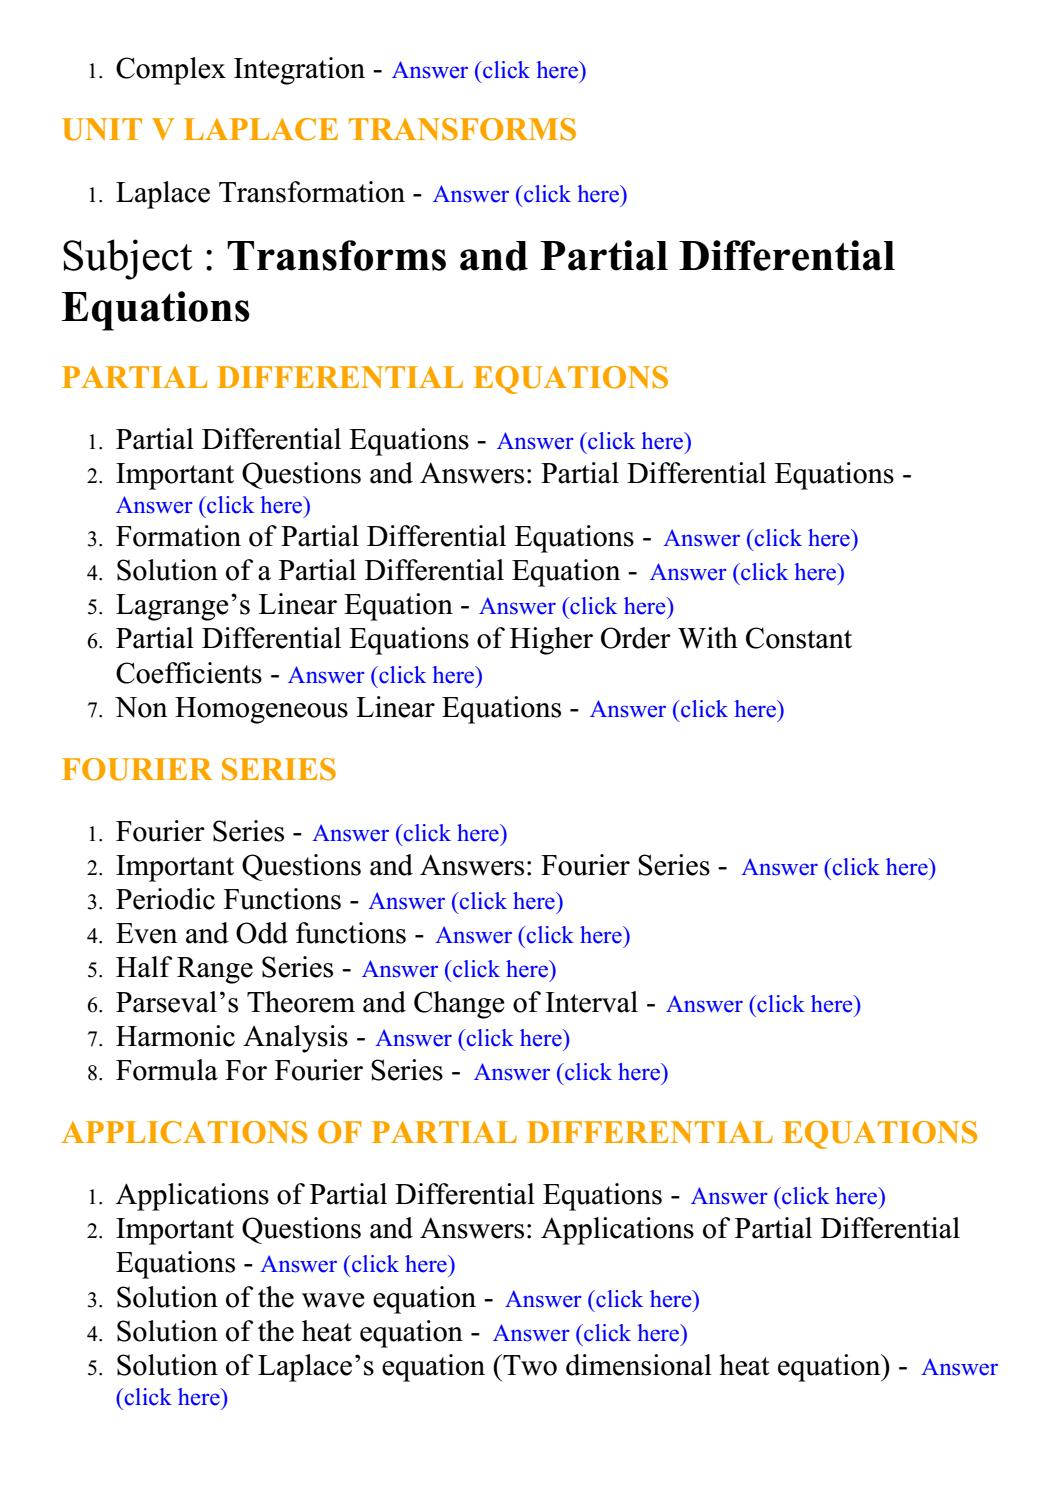 CSE Computer Science Engineering - Lecture Notes, Study Materials